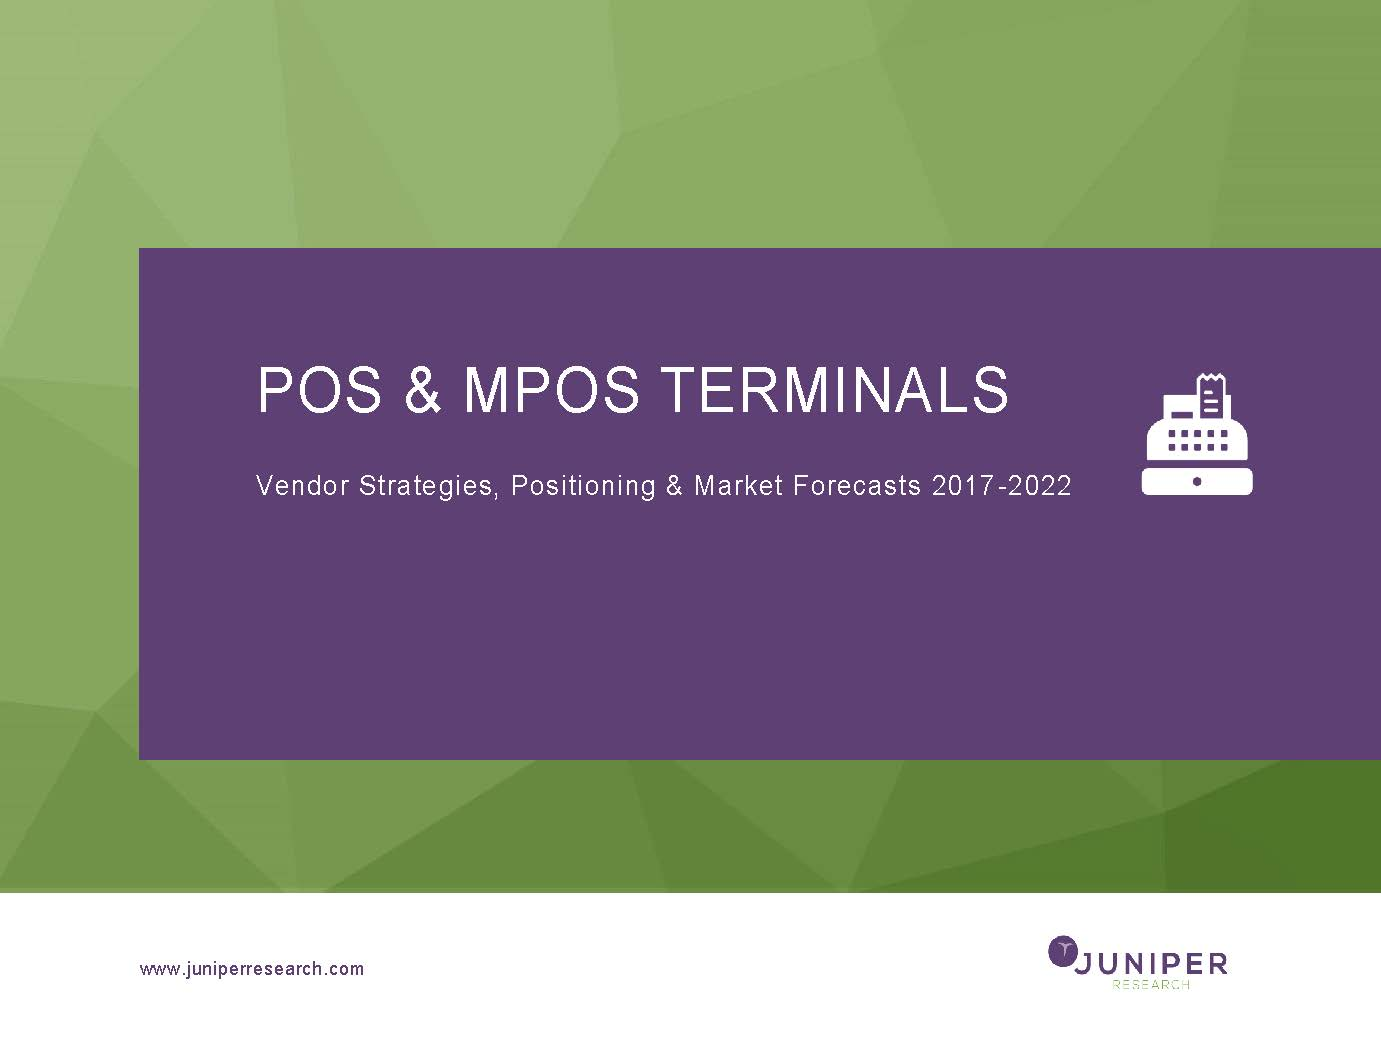 POS and mPOS Terminals: Vendor Strategies, Positioning & Market Forecasts 2017-2022